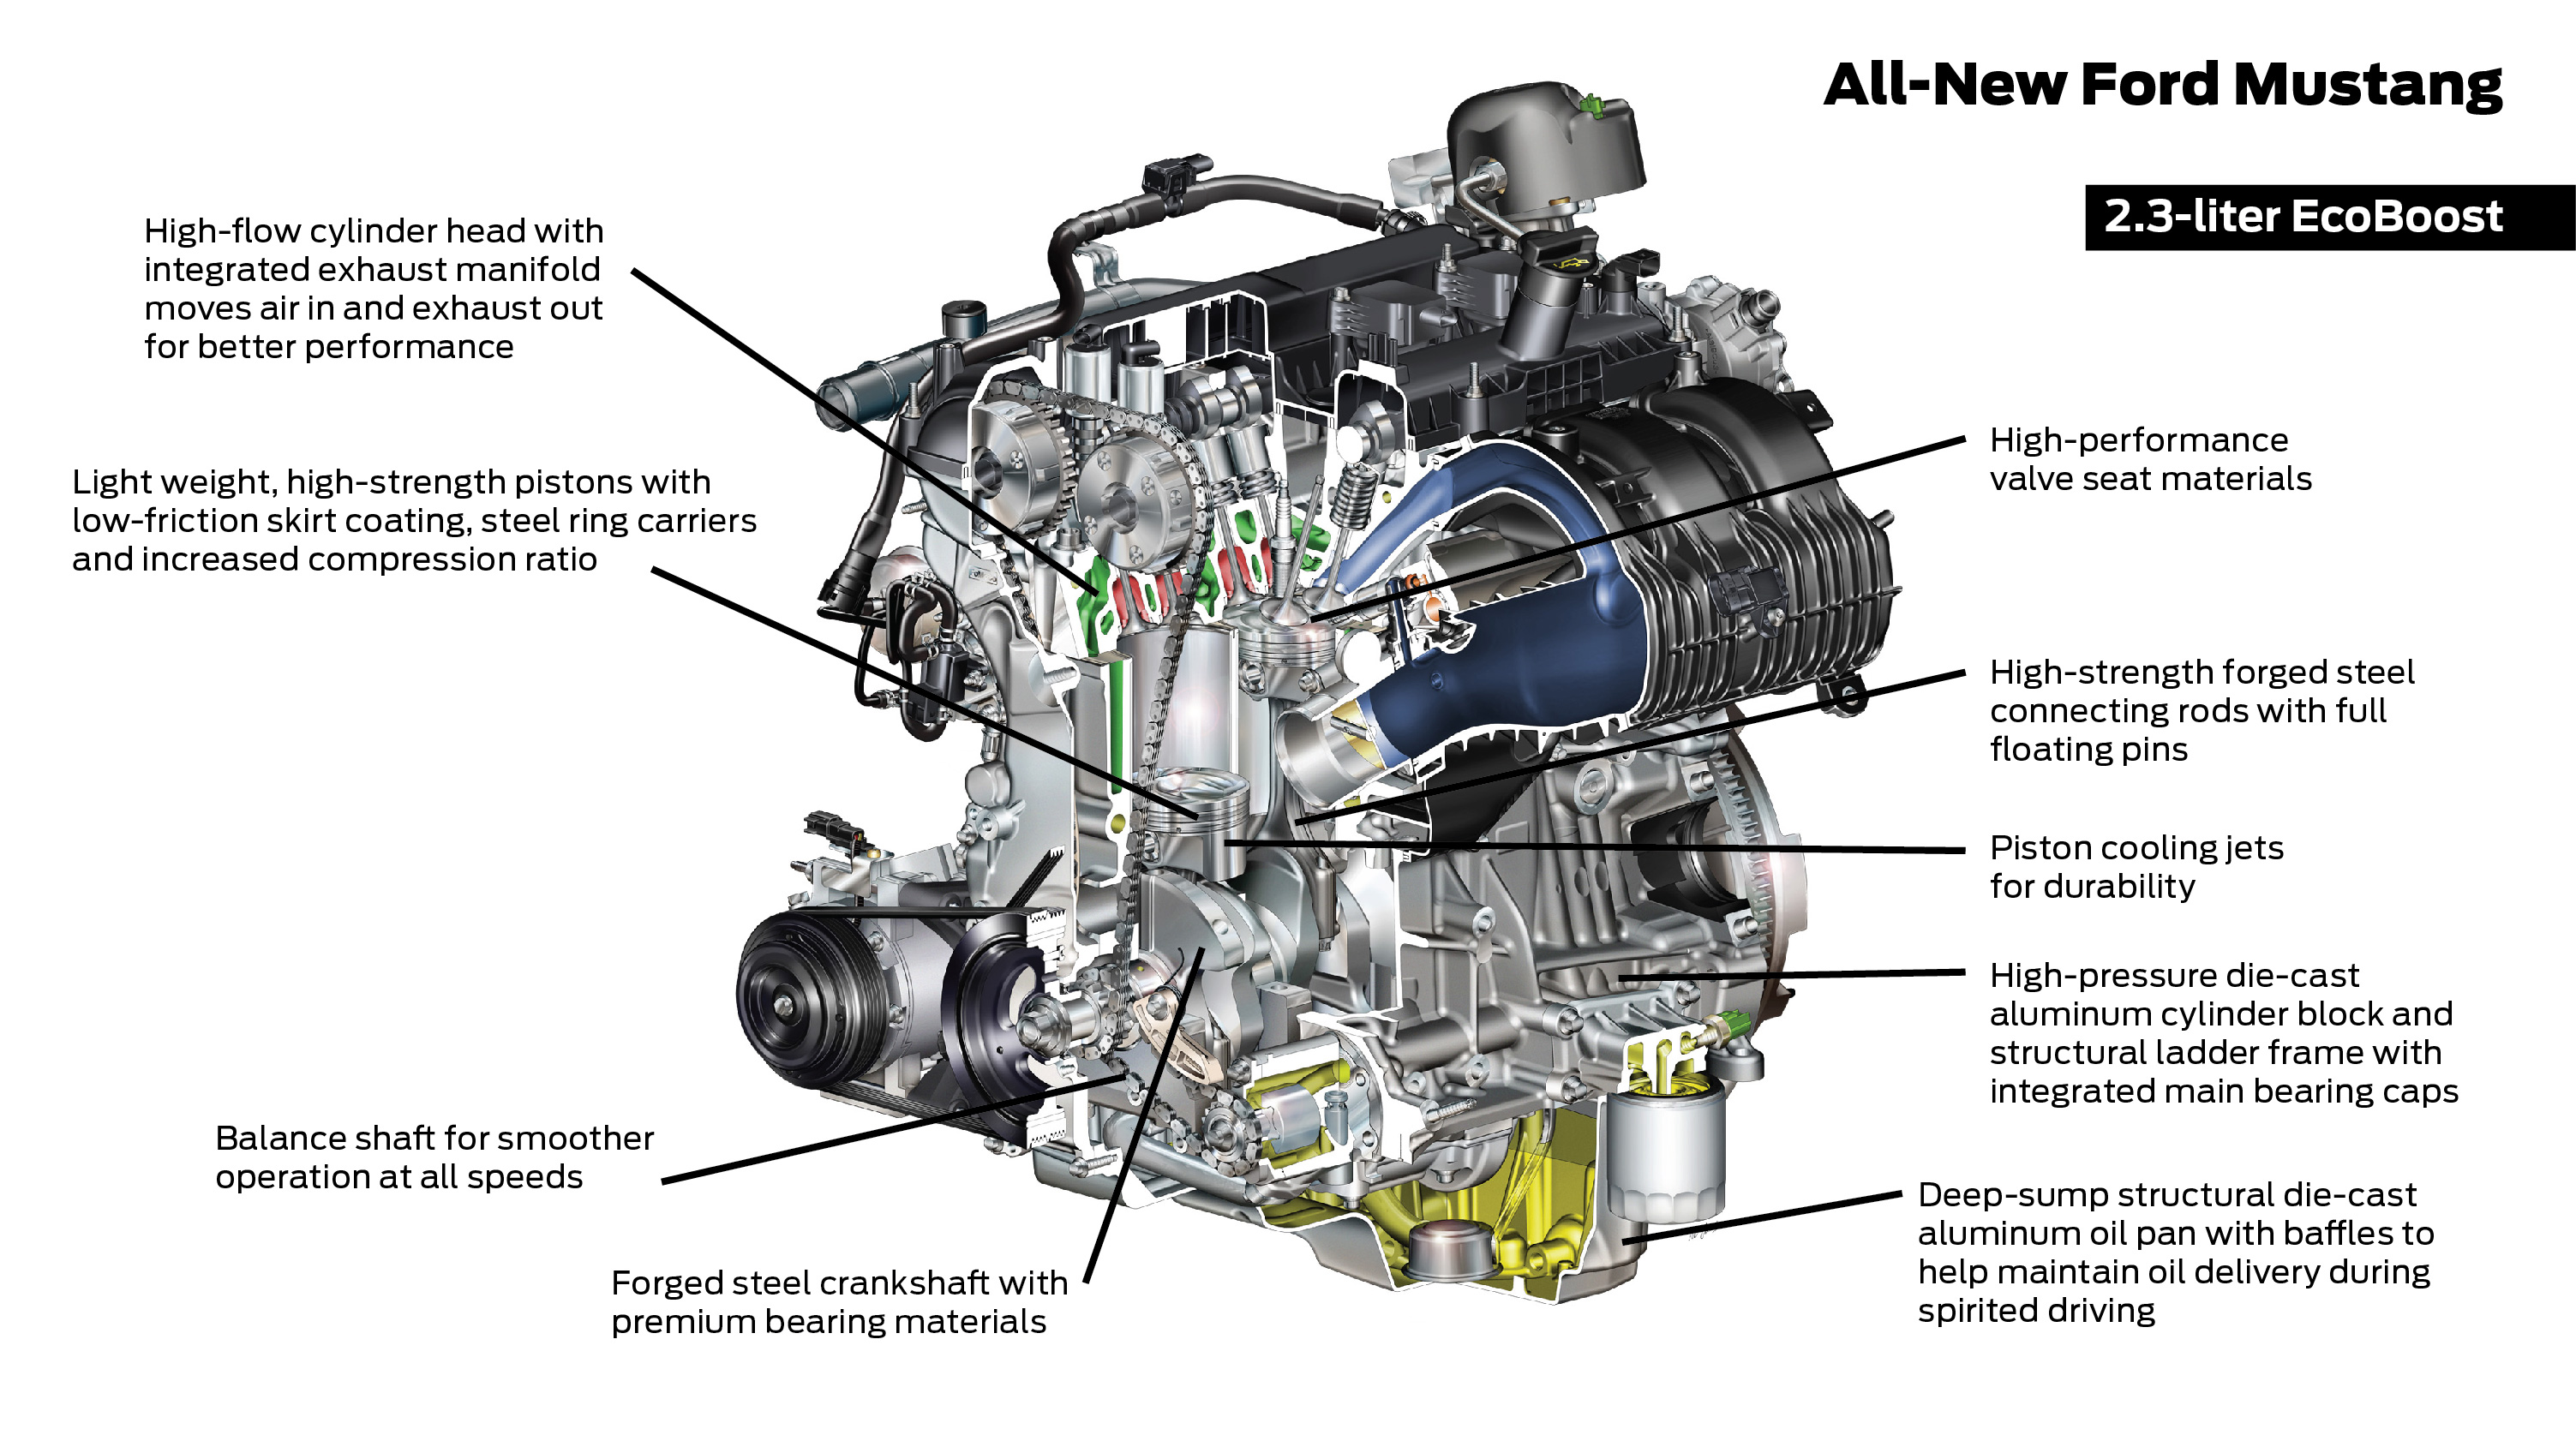 A Simple Guide to the 2015 Ford Mustang 2.3-liter EcoBoost